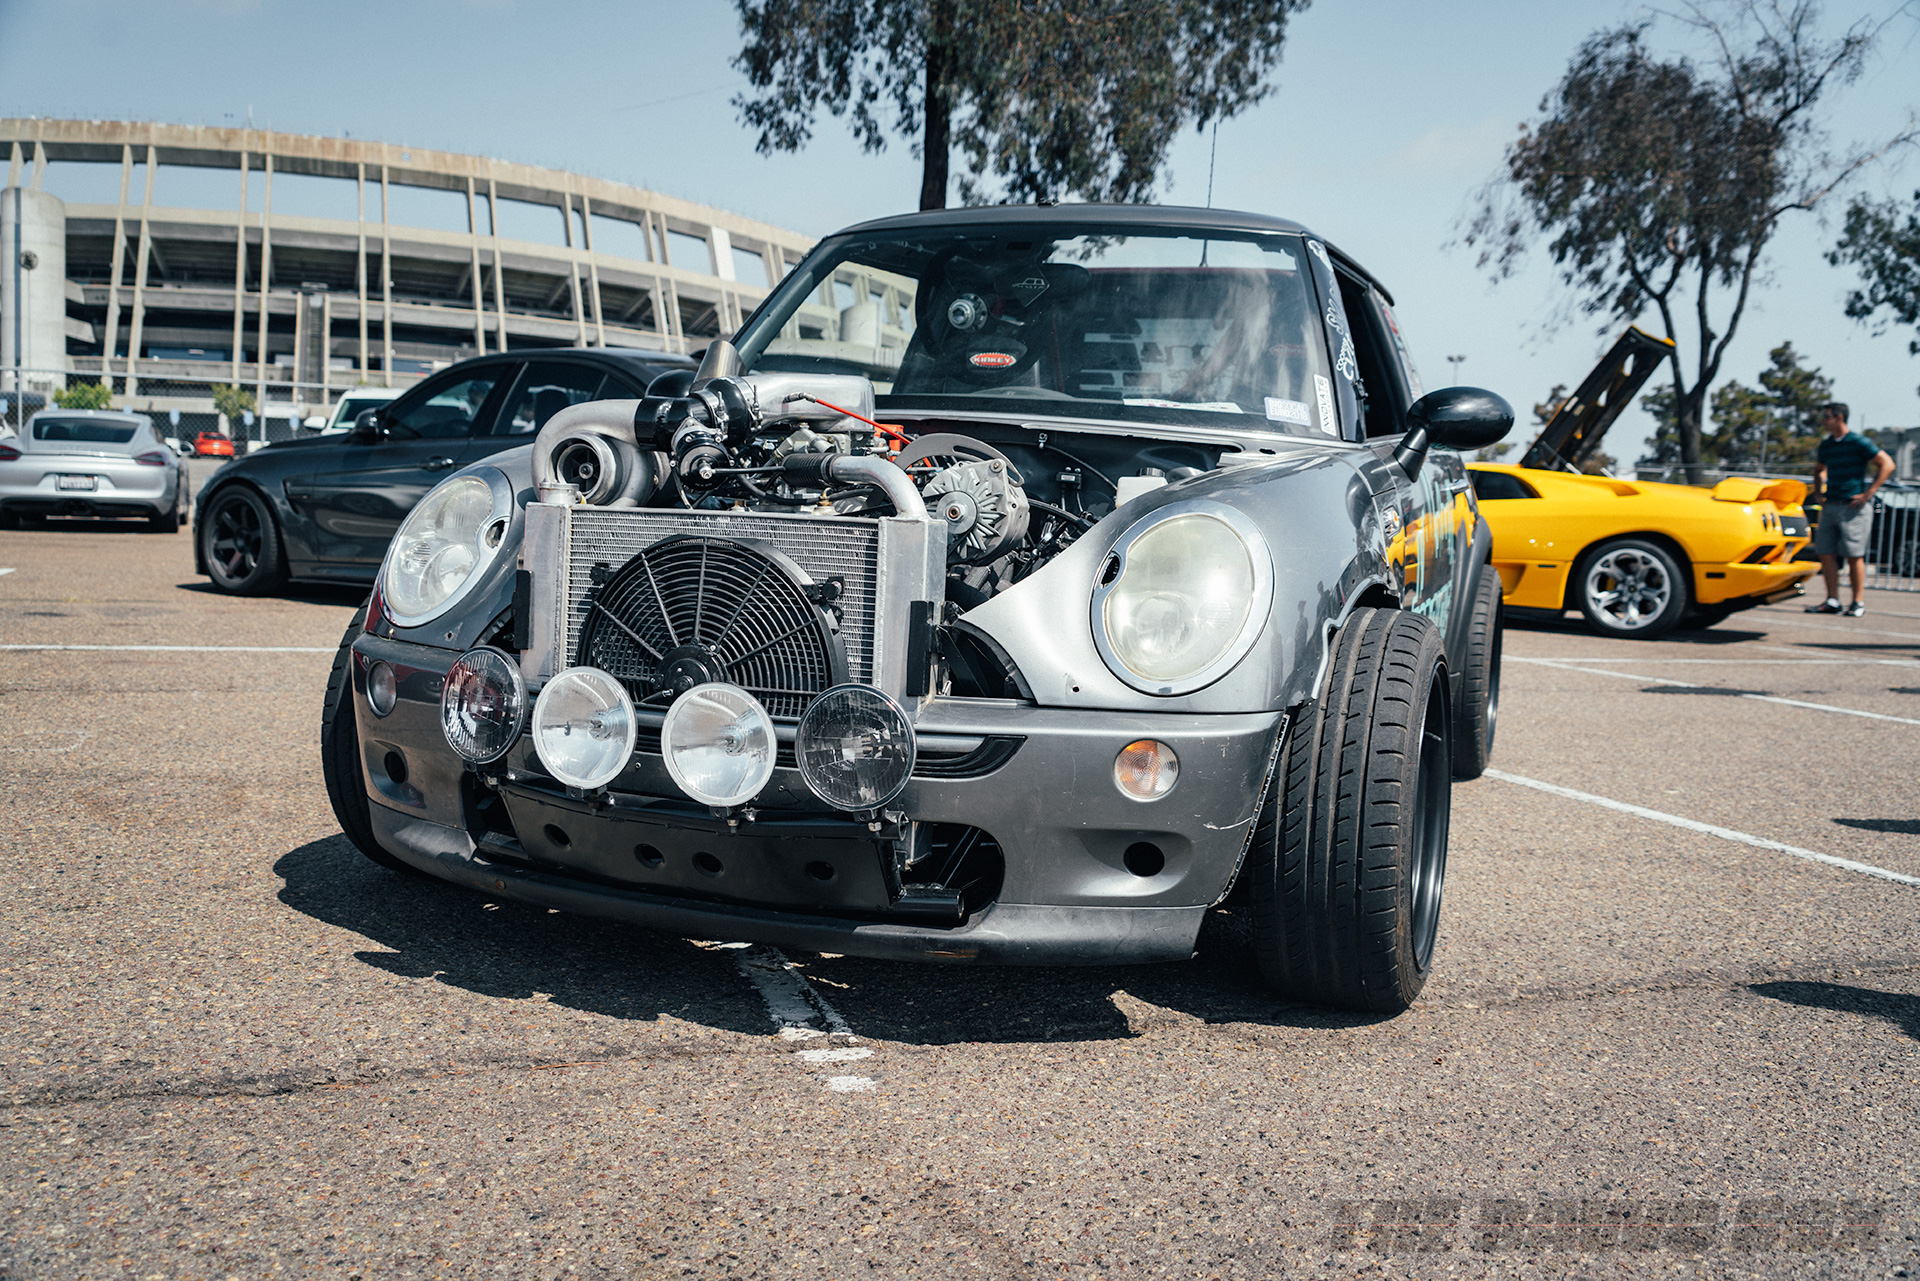 Stephan Brown's R56 Cooper with a turbocharged Chevrolet 350ci swapped in and converted to rear-wheel-drive